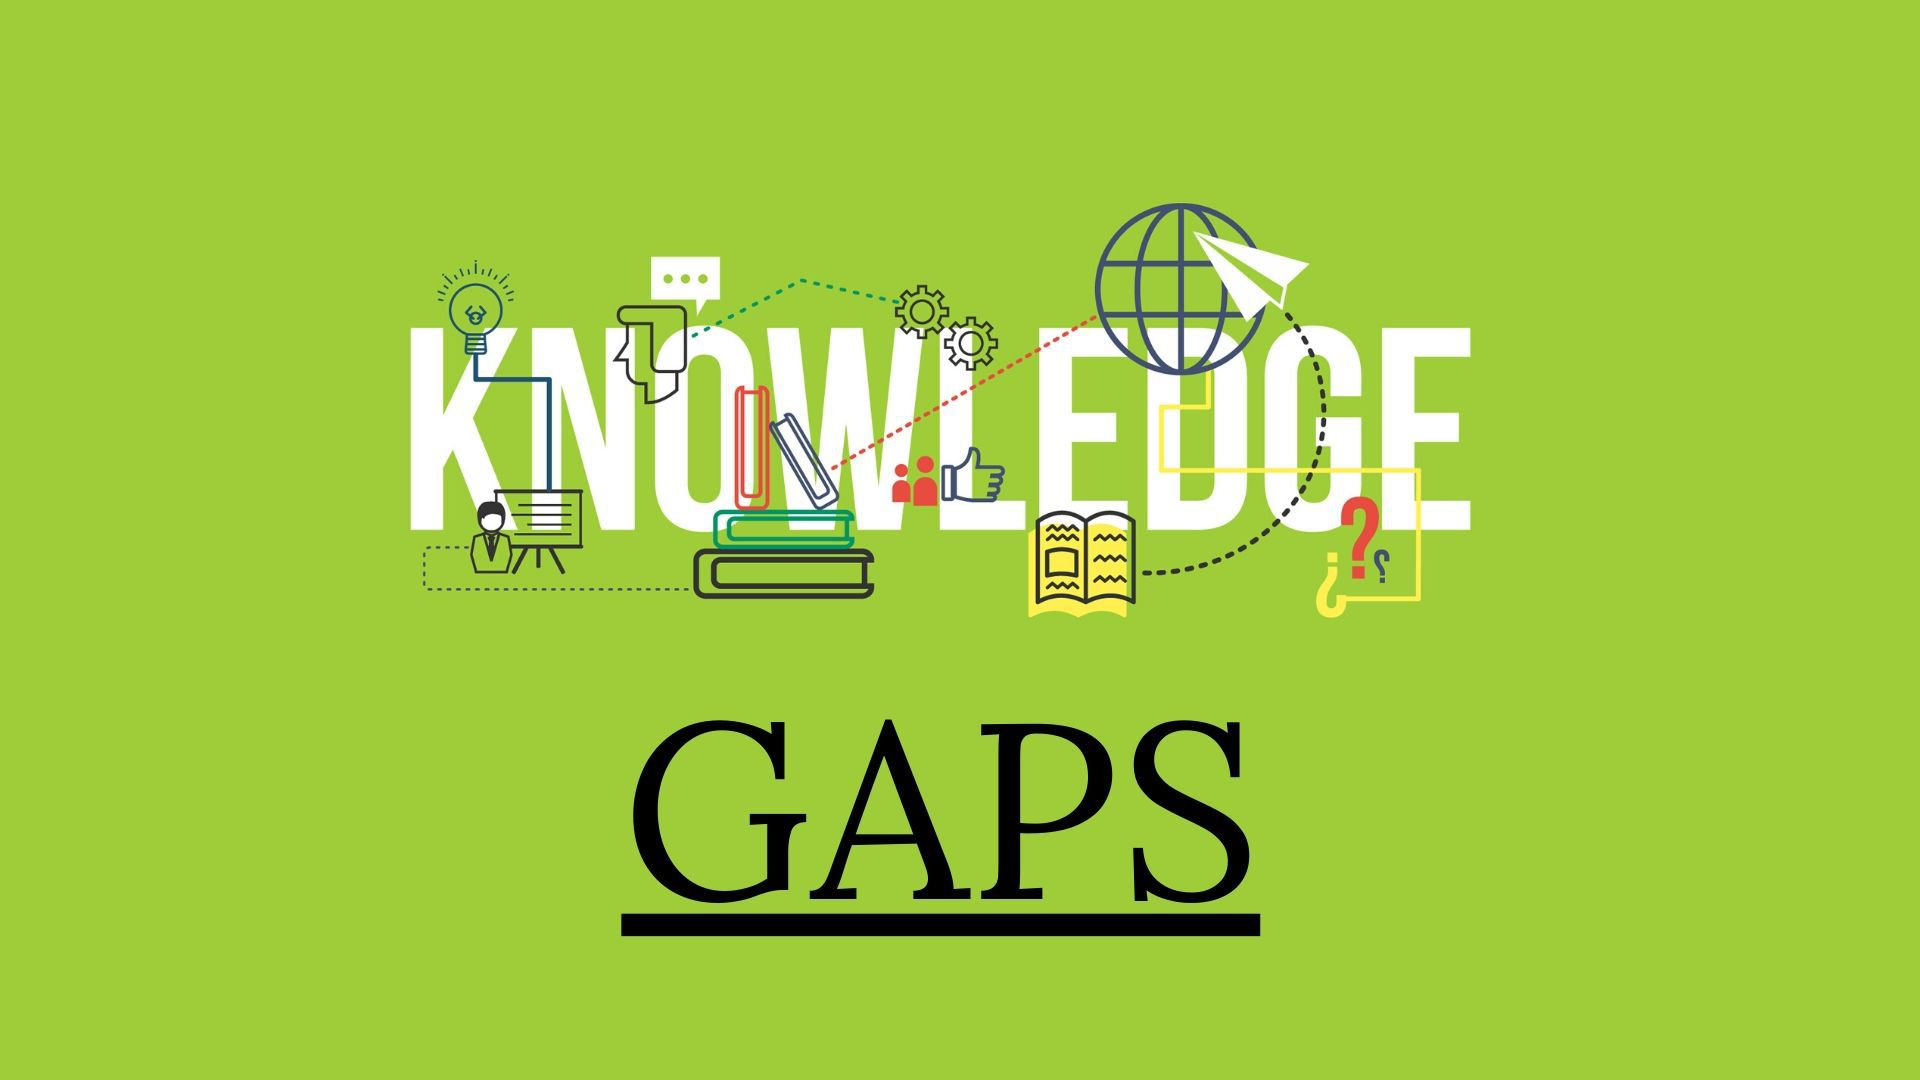 Tips for Filling the Knowledge Gap